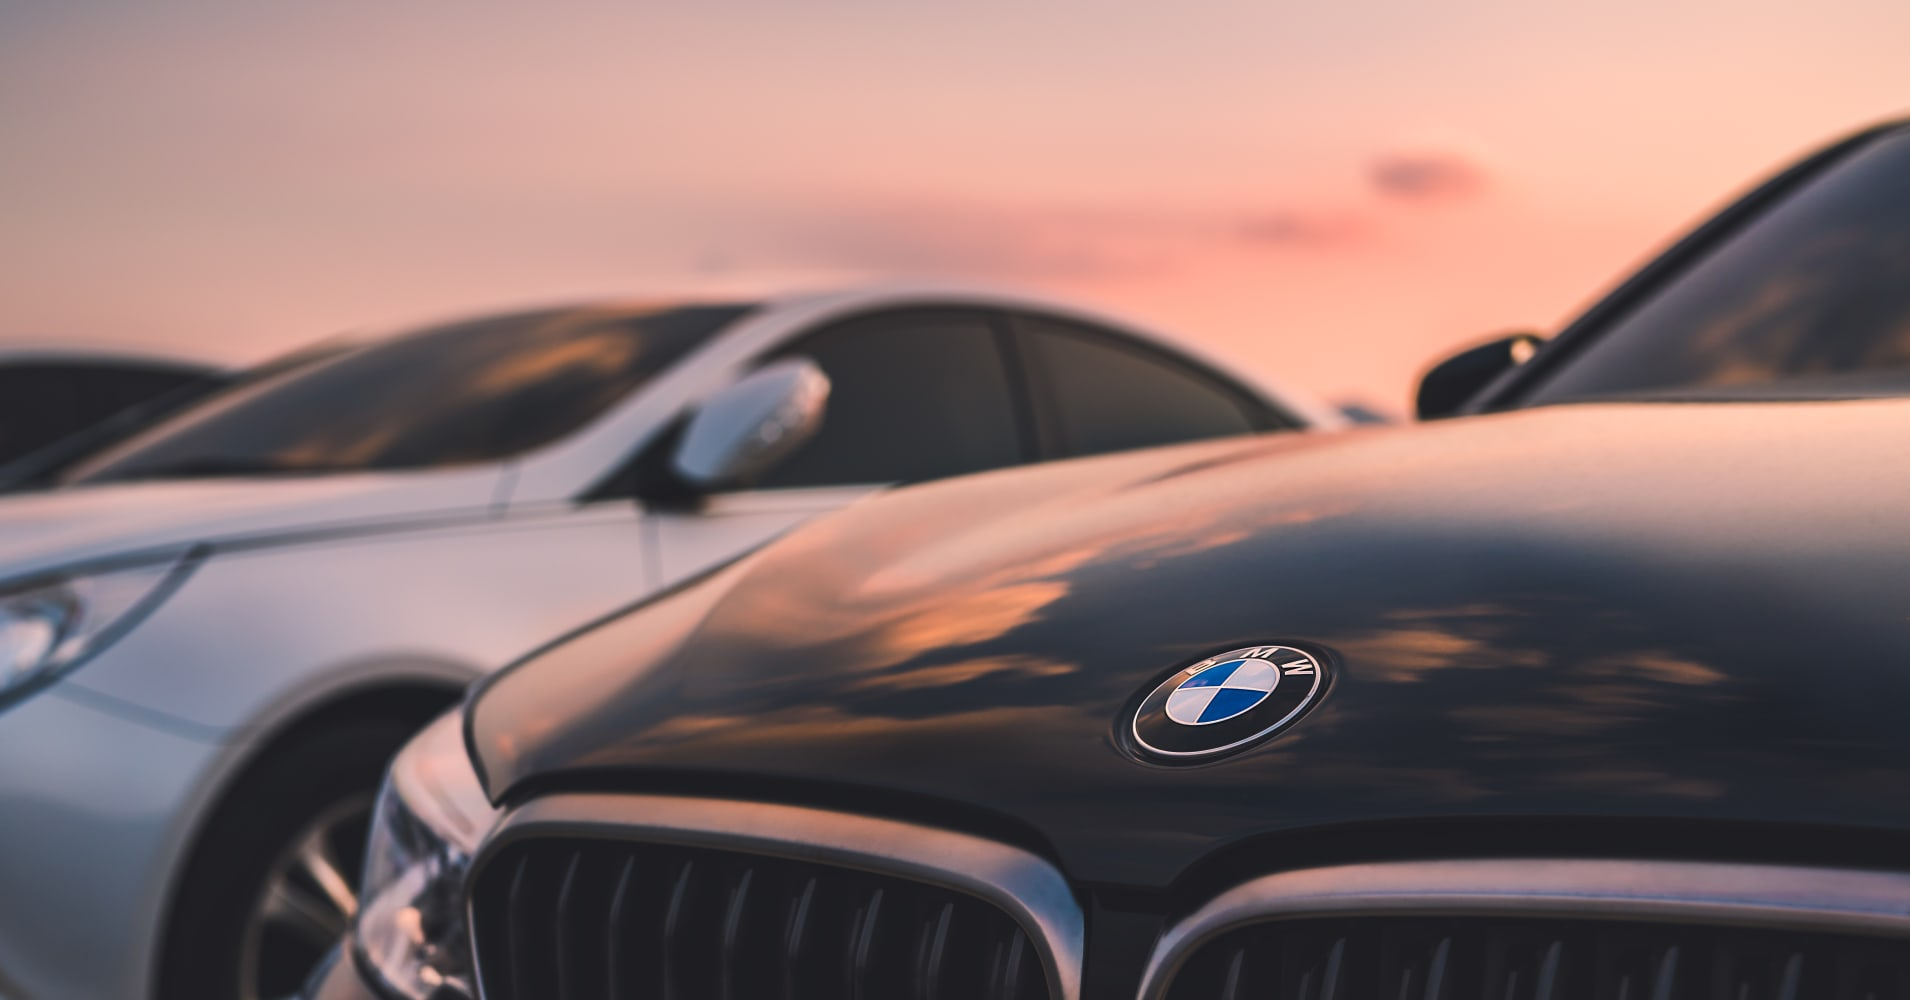 BMW is considering second US manufacturing plant, says executive